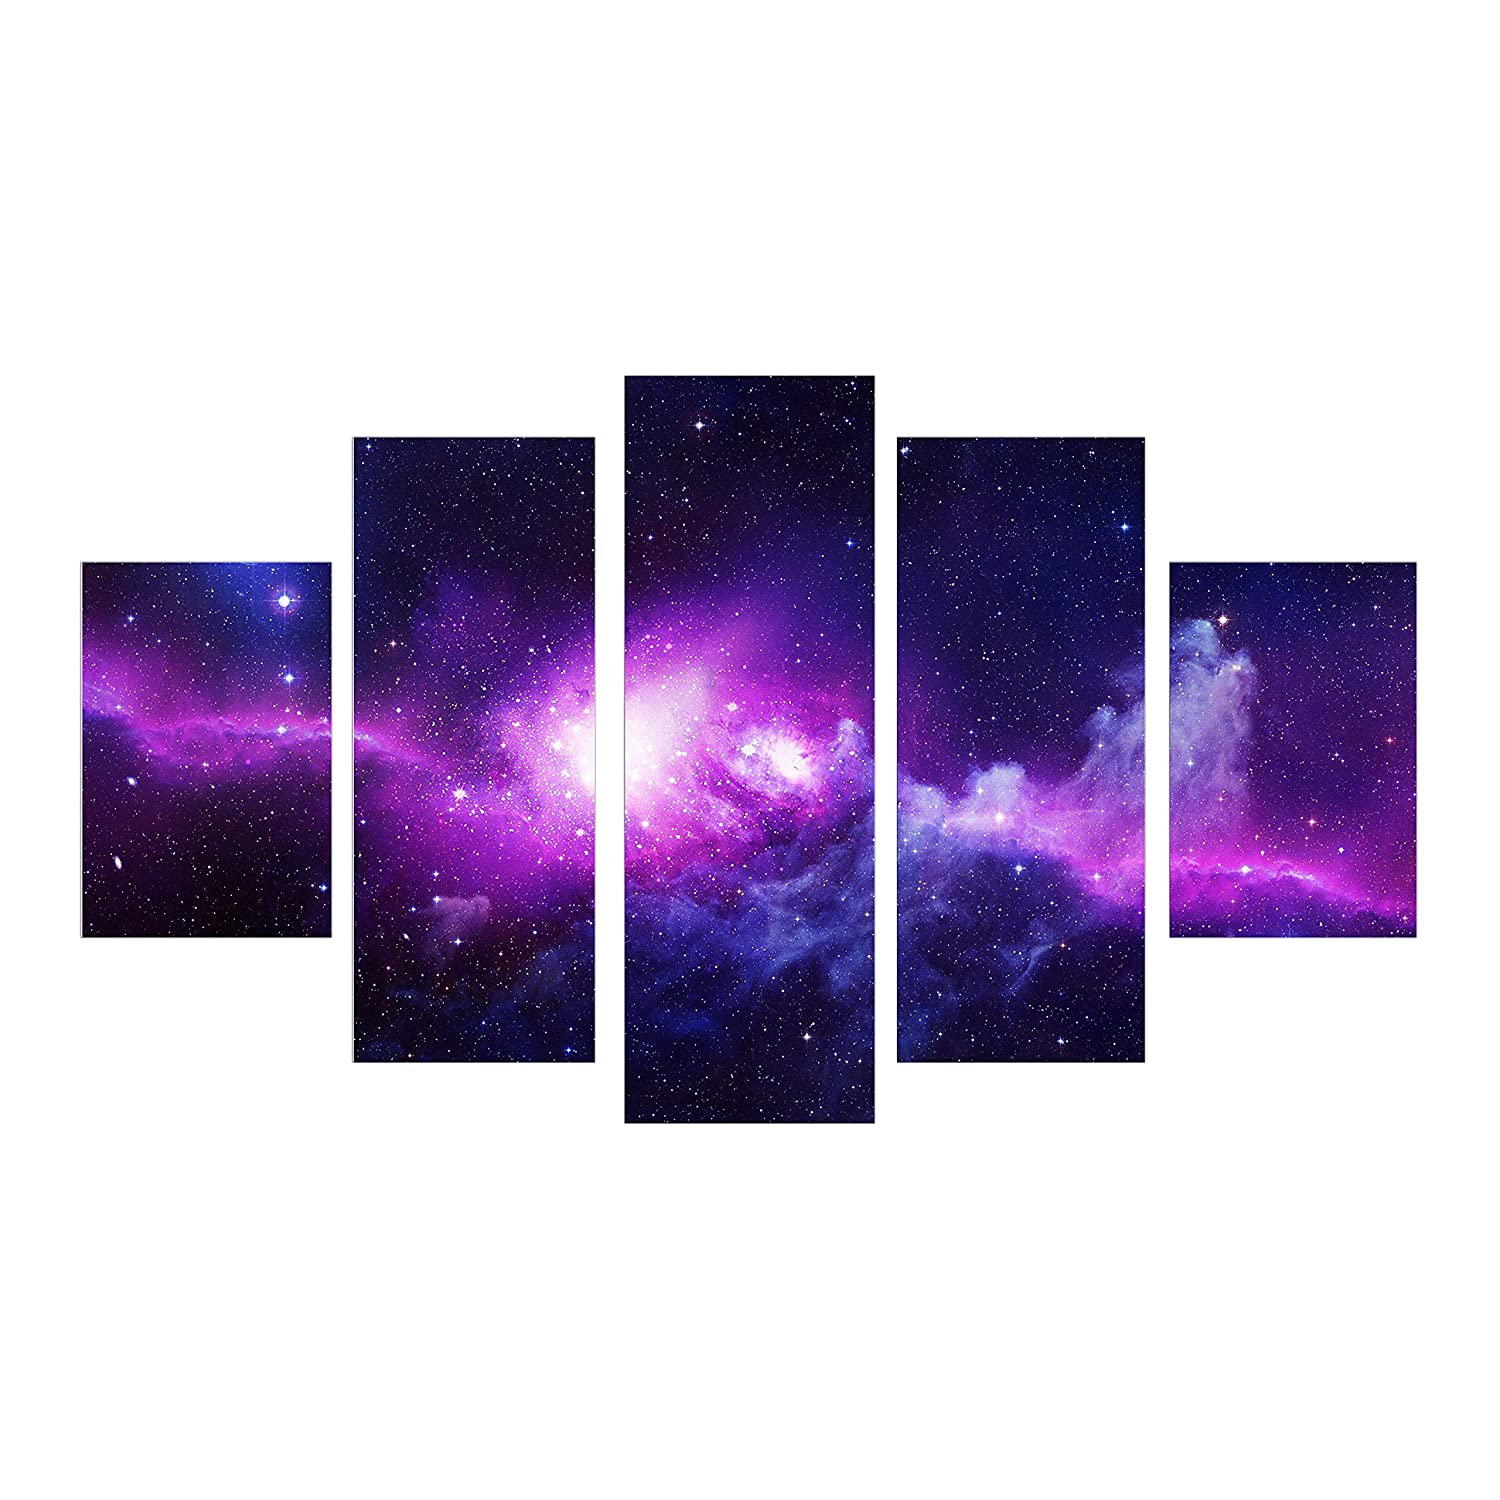 5 Piece Large Star Starry Night Canvas Art Print Purple Wall Oil Painting Picture for Home Office Living Room Wall Décor Framed ready to hang HappyHouseArt